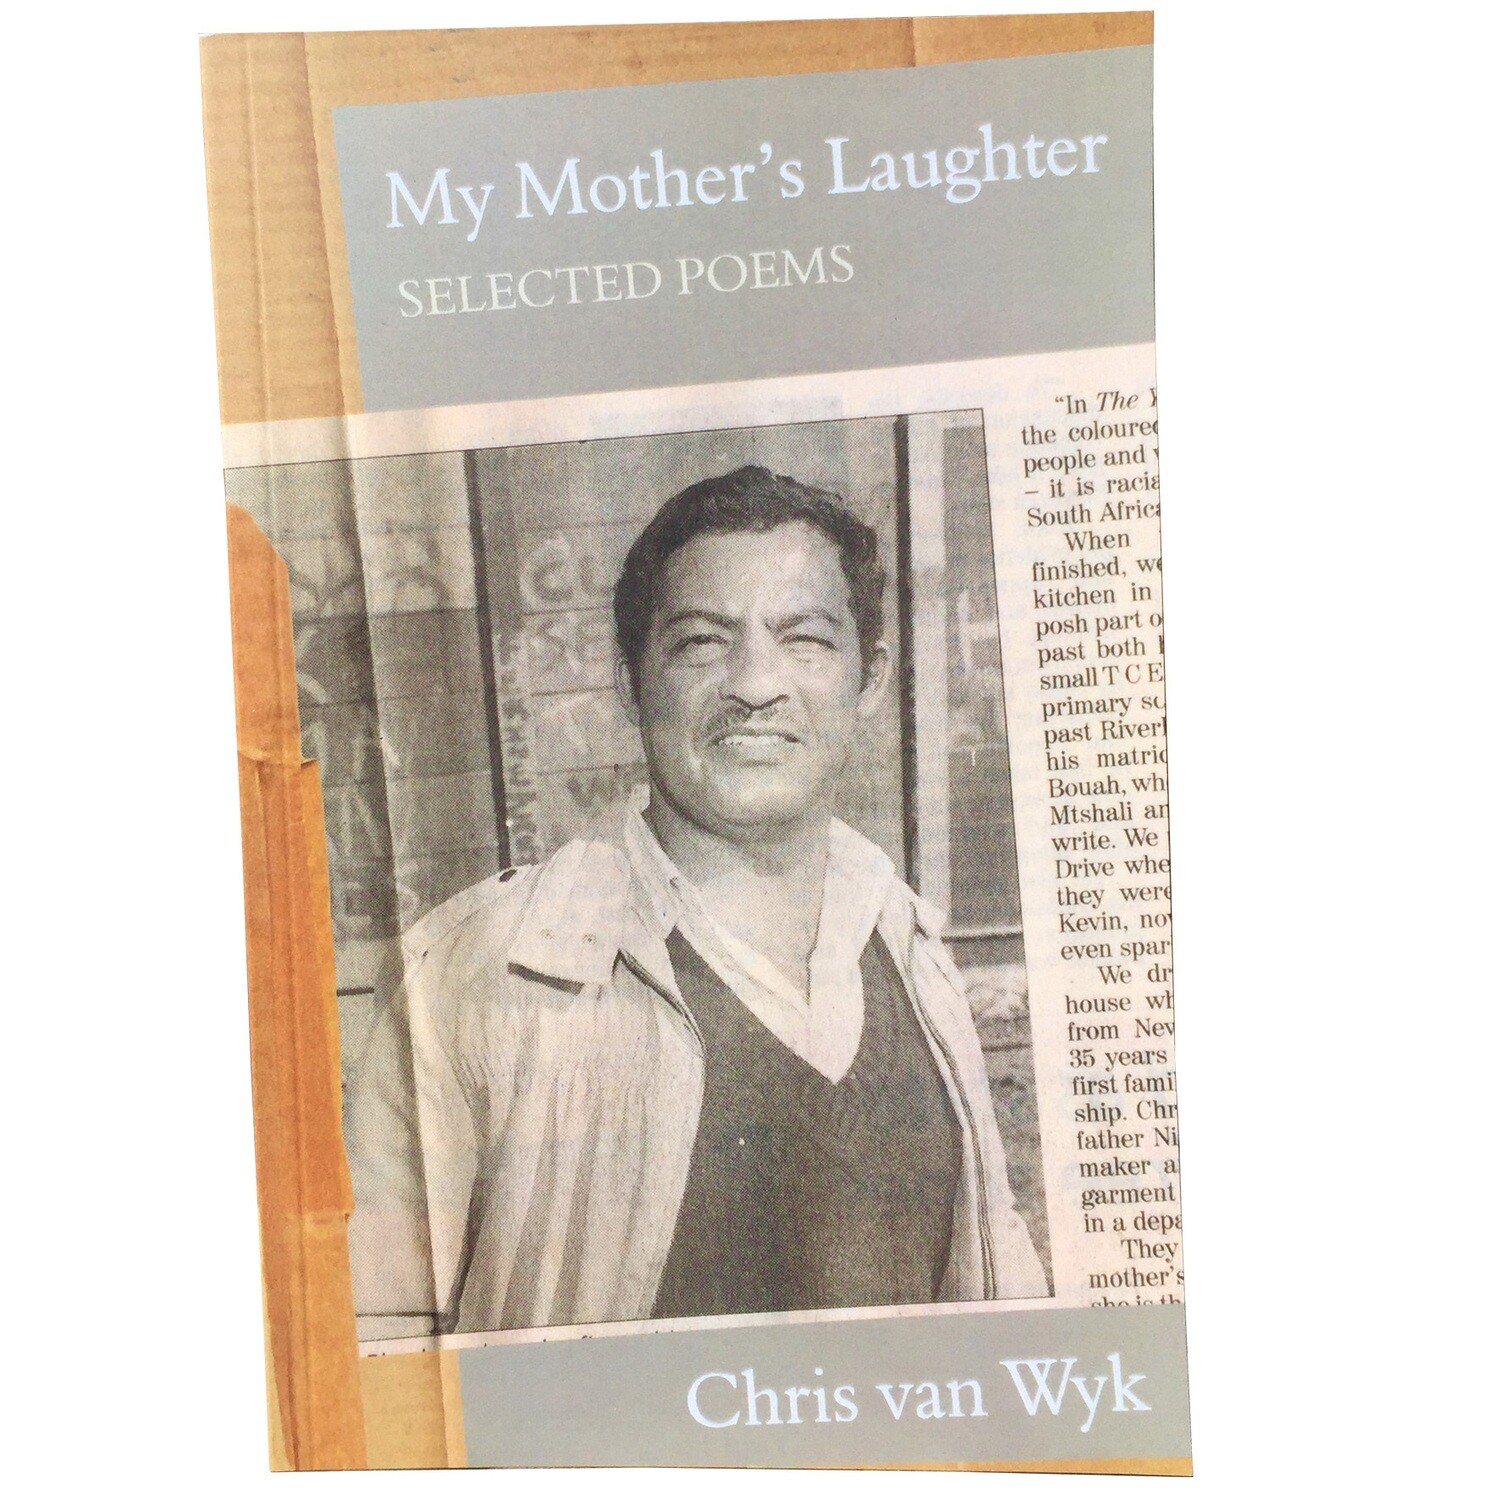 My Mother's Laughter – Selected Poems by Chris van Wyk